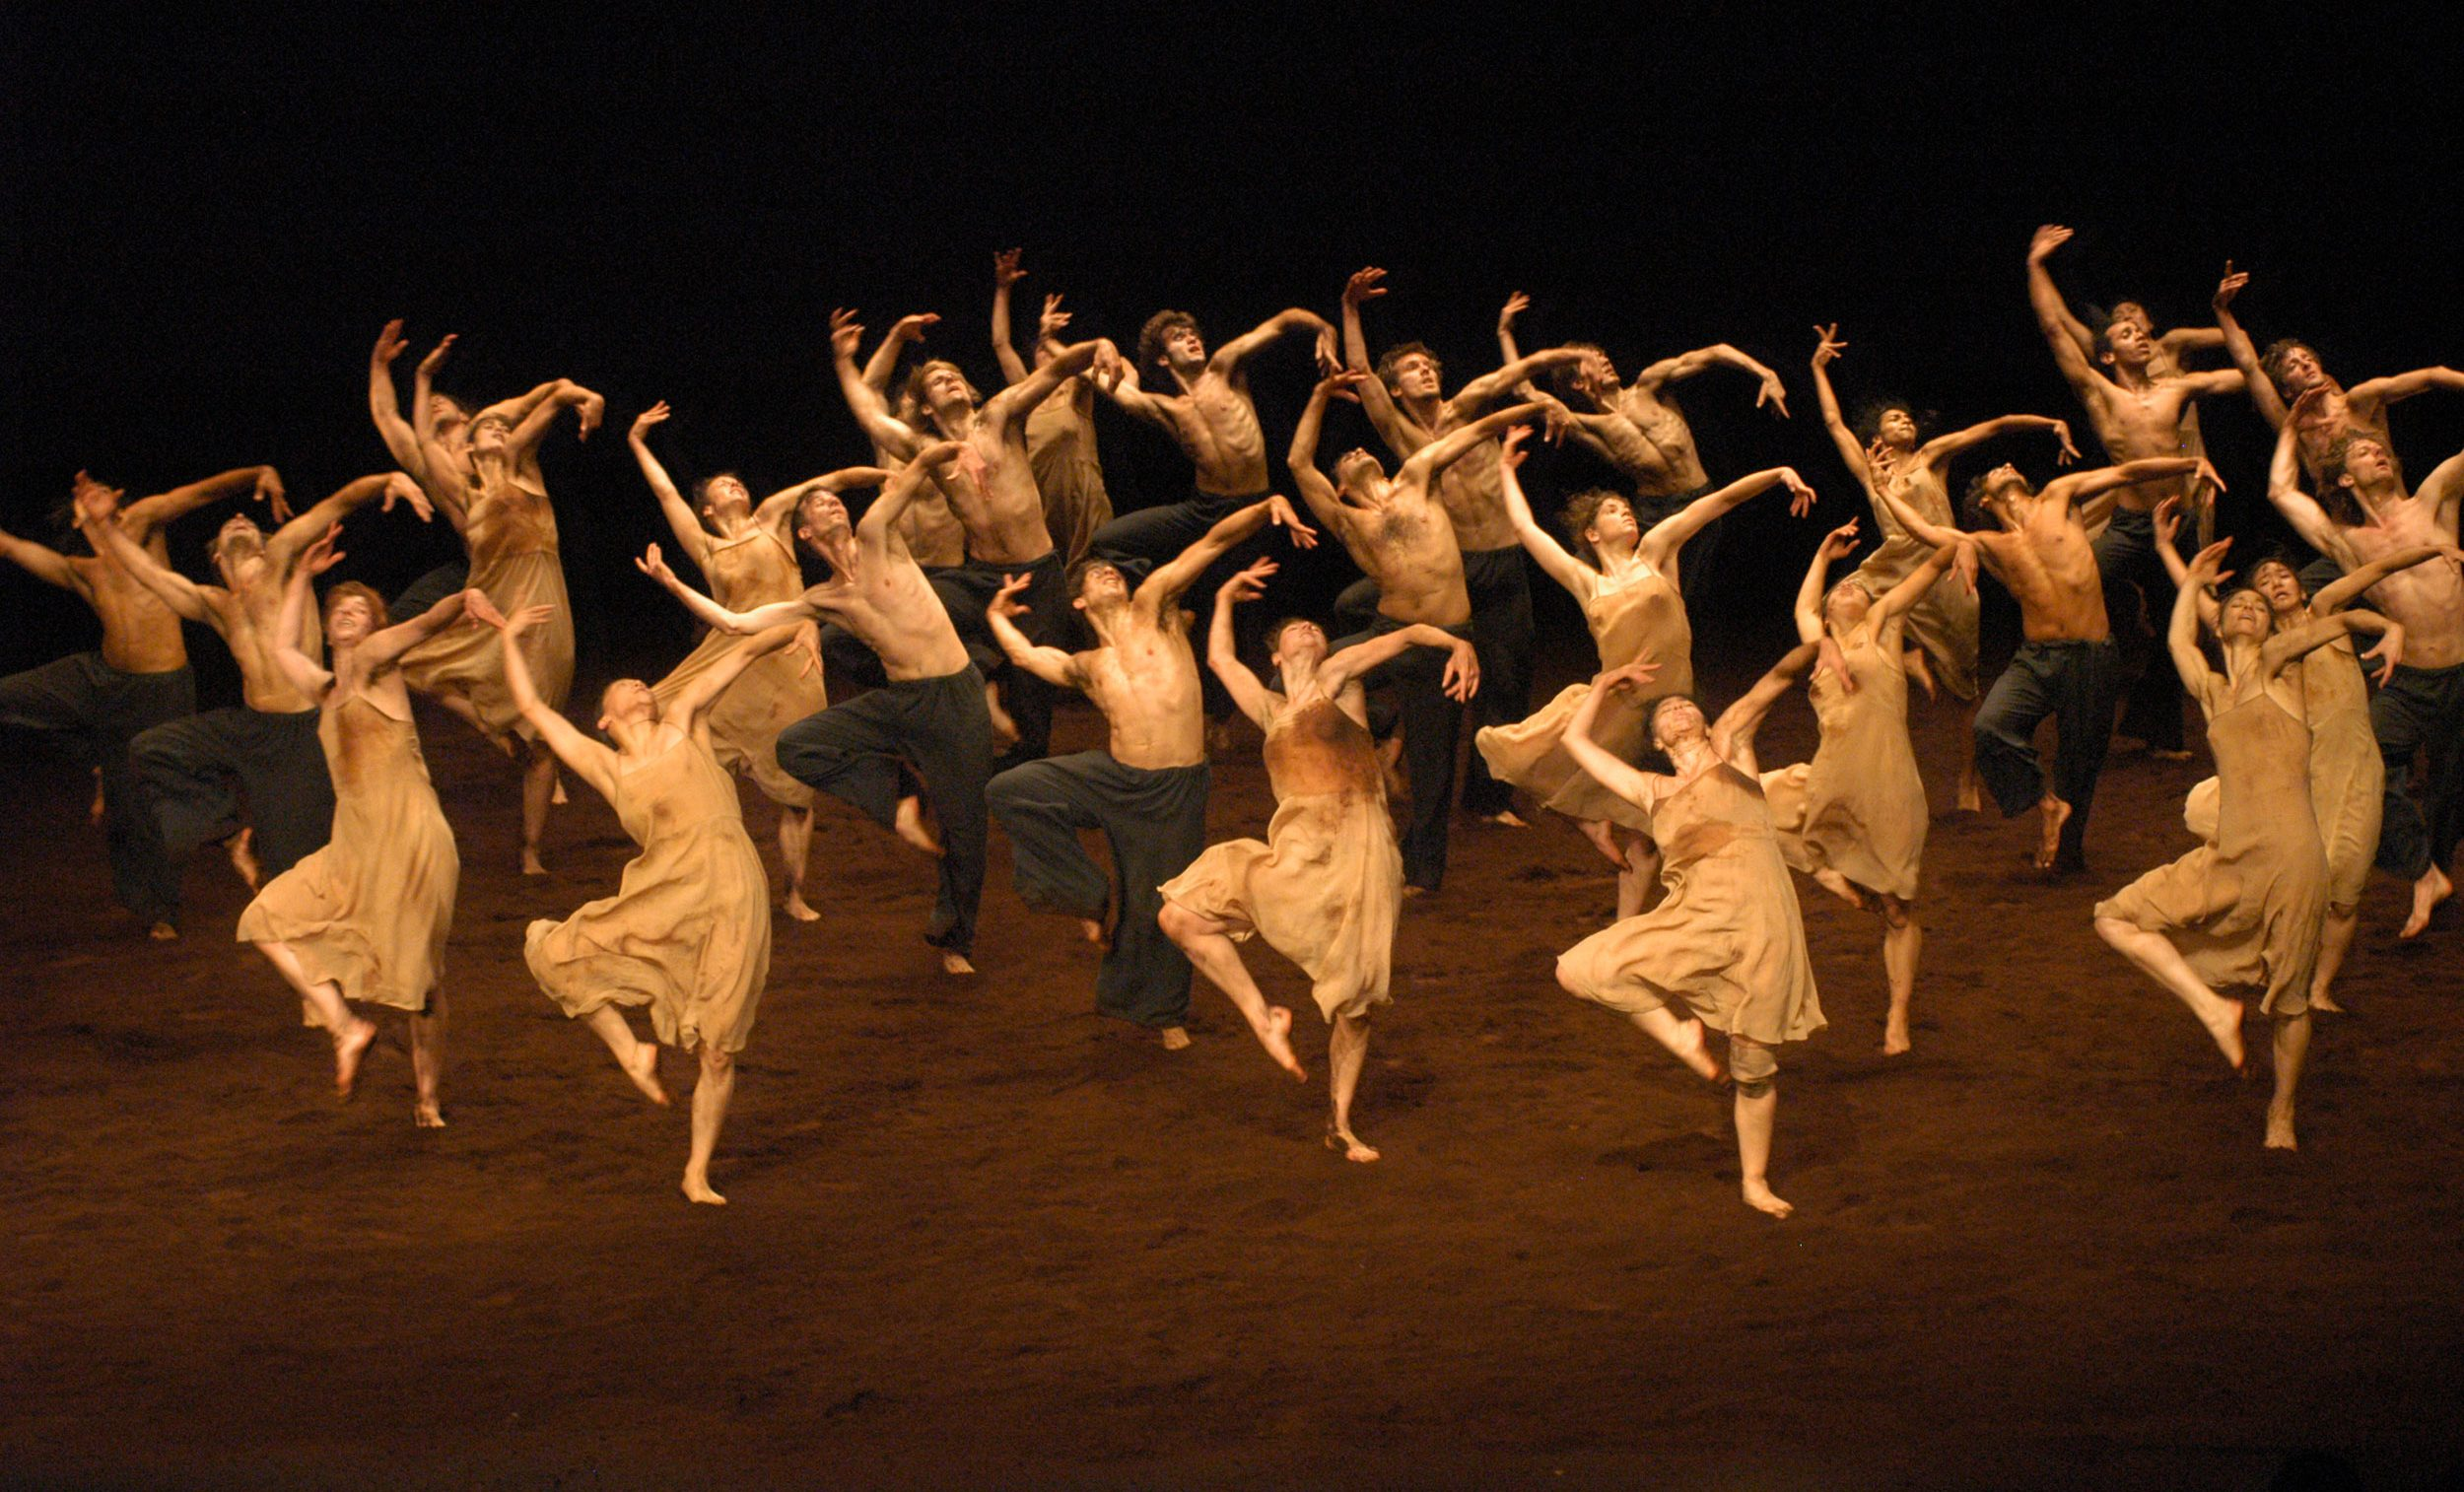 LE-SACRE-DU-PRINTEMPS-Ensemble-2006-phot-ulli-weiss-copyright-pina-bausch-foundation